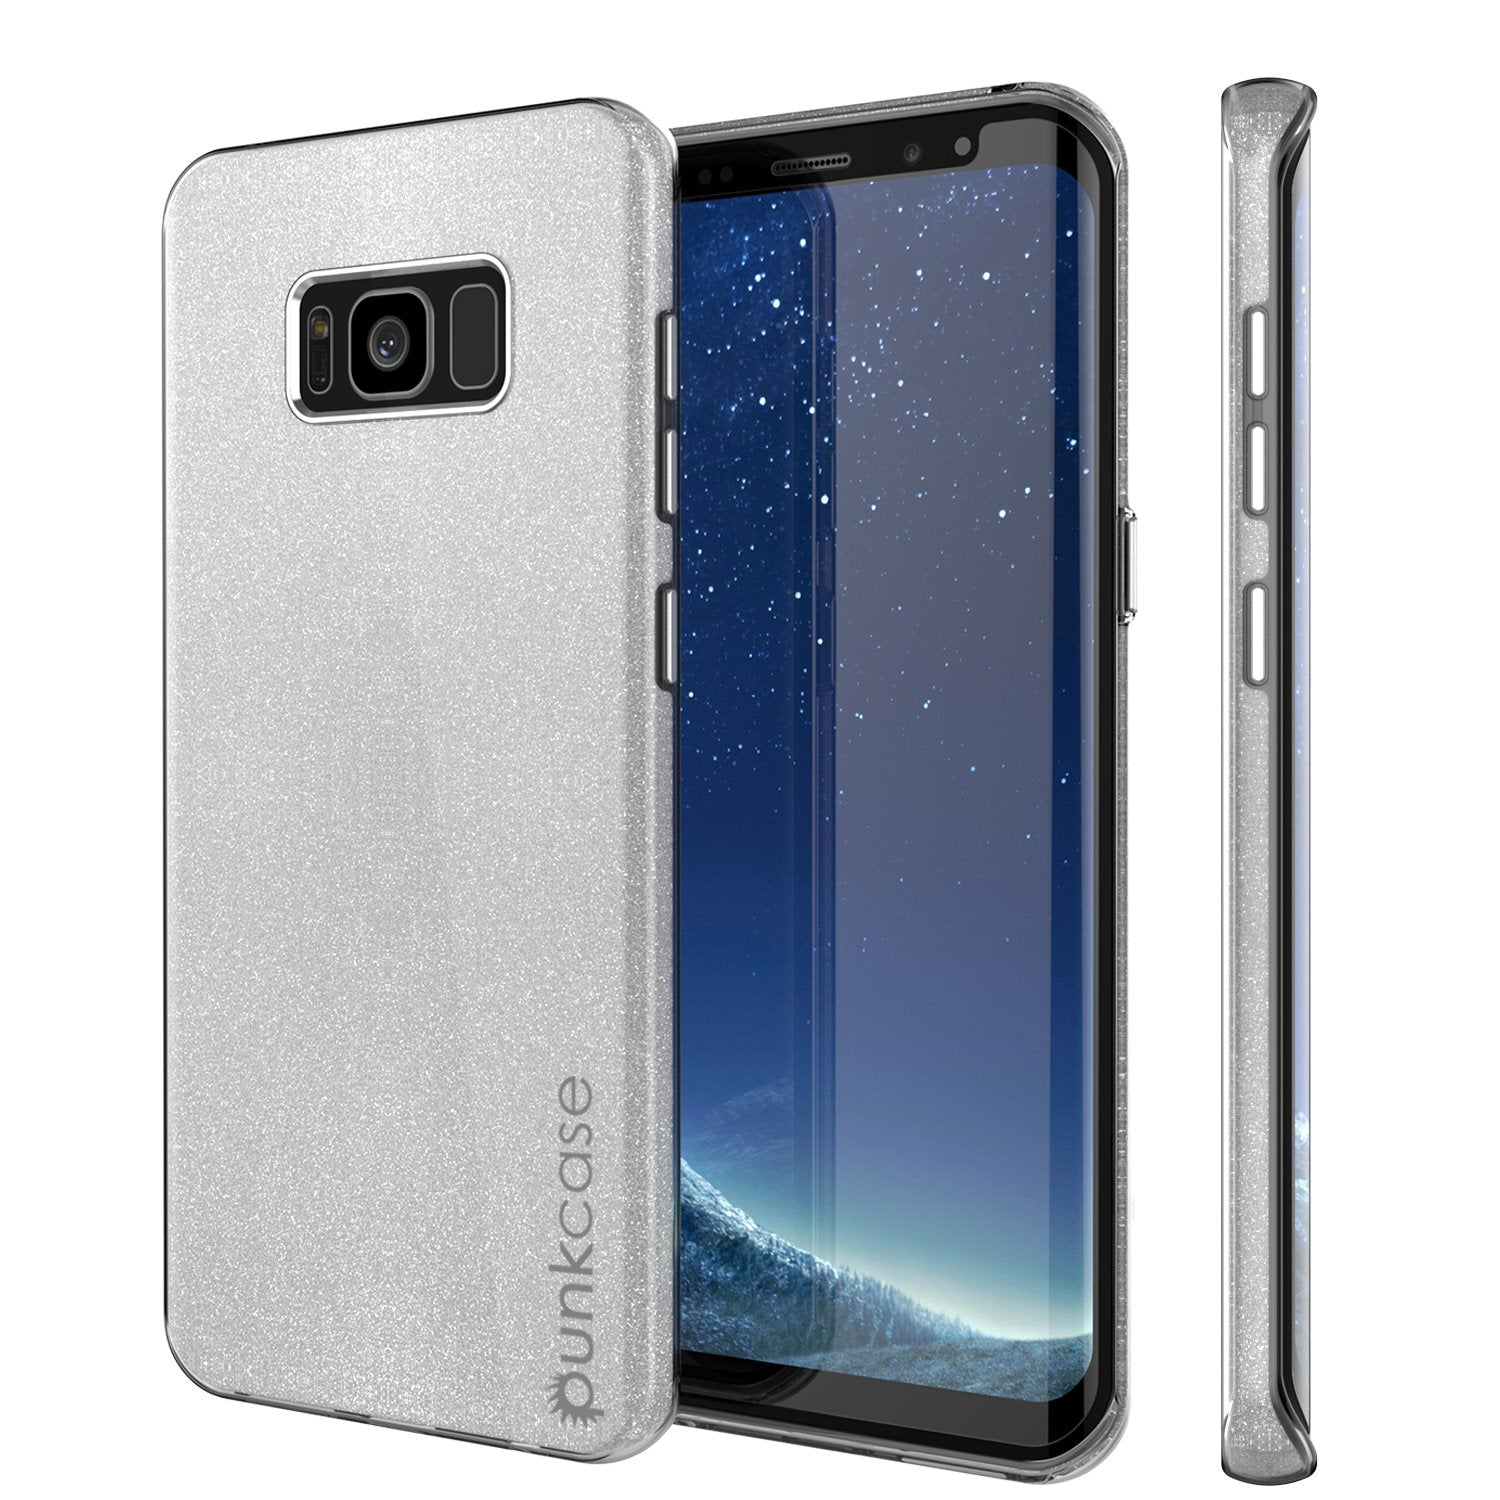 Galaxy S8 Case, Punkcase Galactic 2.0 Series Ultra Slim Protective Armor Cover Silver